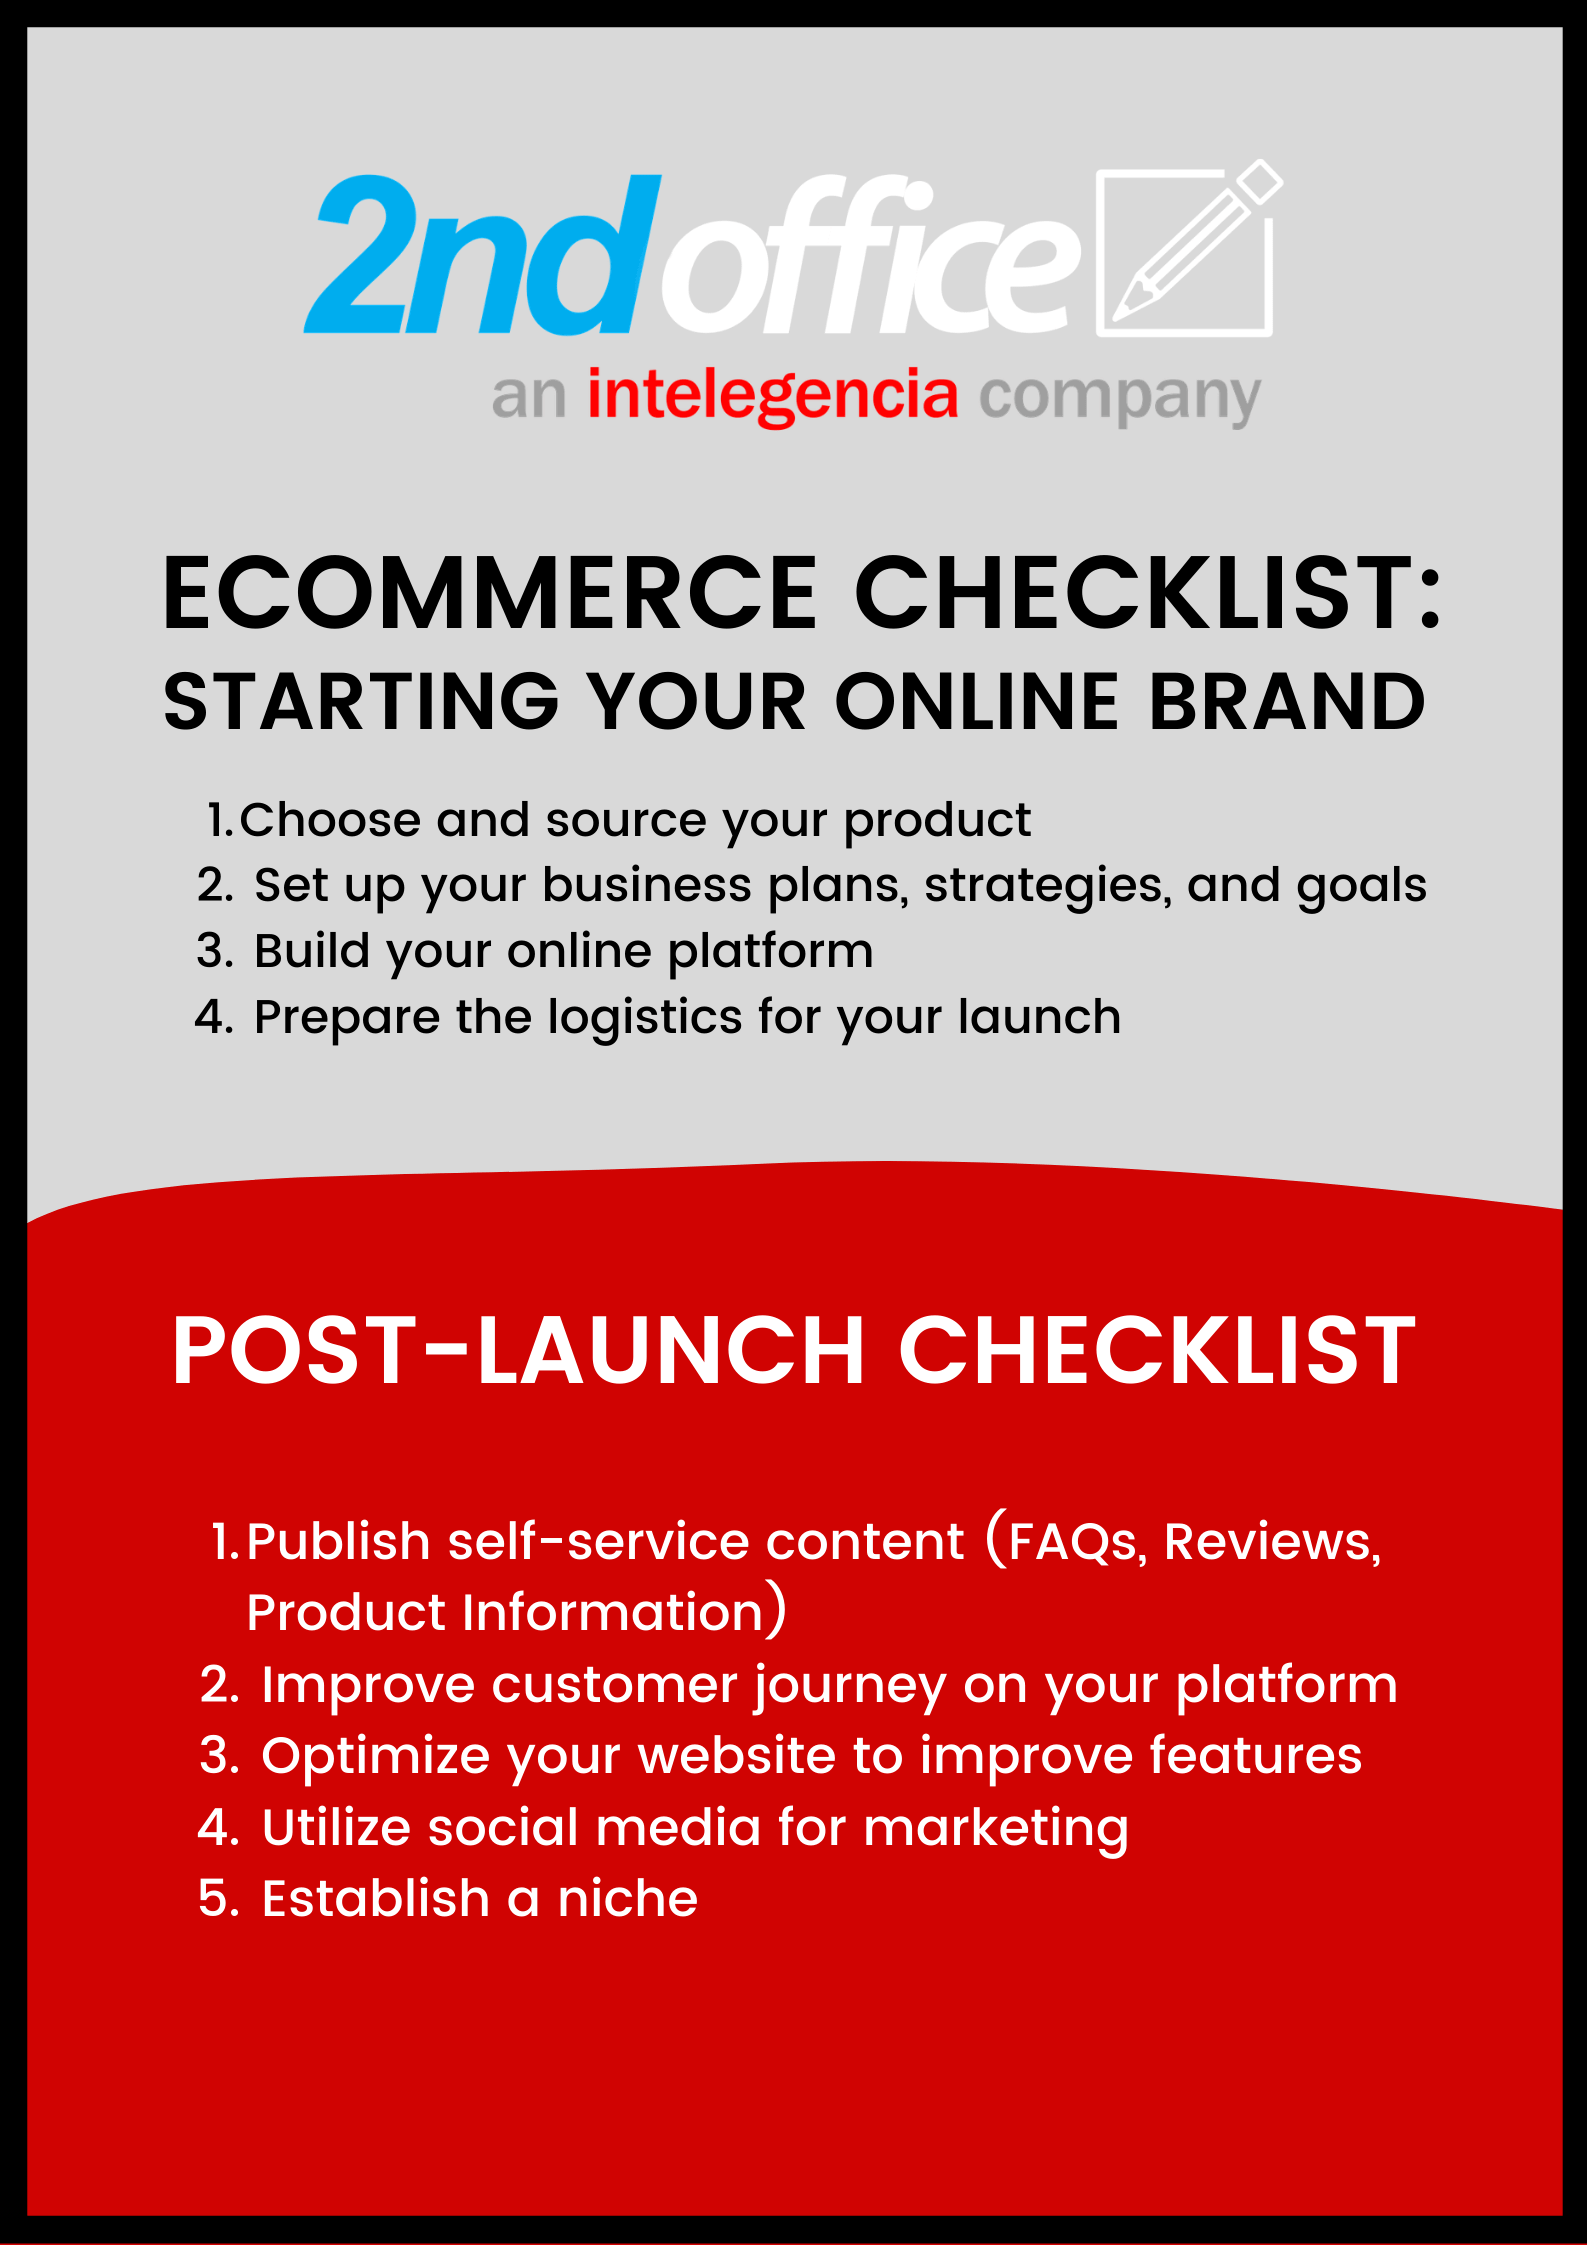 Ecommerce checklist for launching your online brand